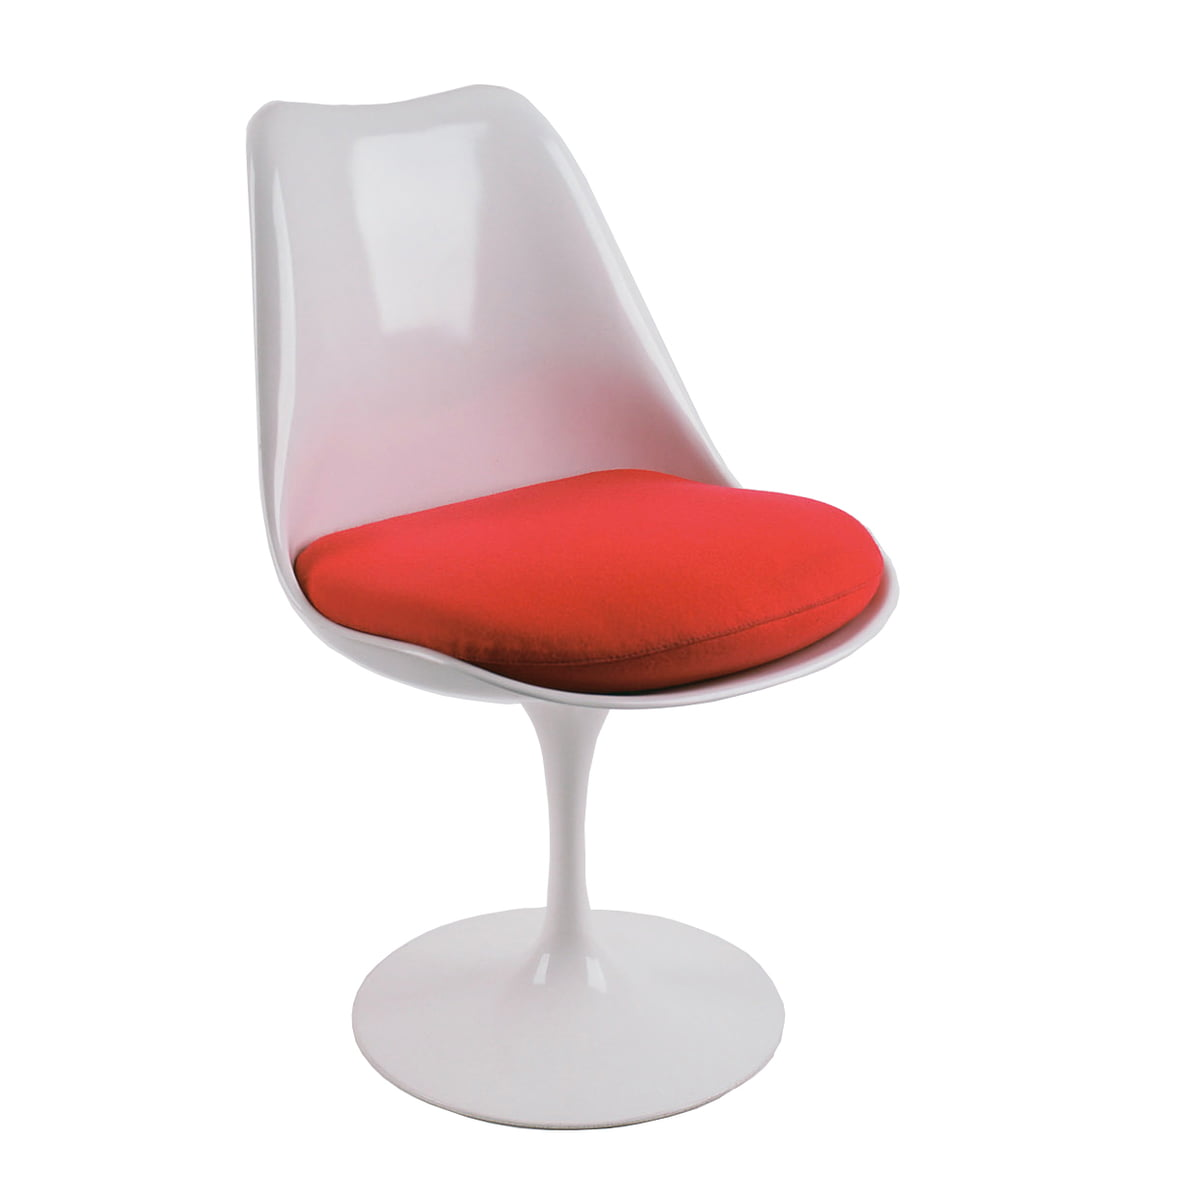 Uncategorized Eero Saarinen Tulip Chair saarinen tulip chair by knoll in our shop chair